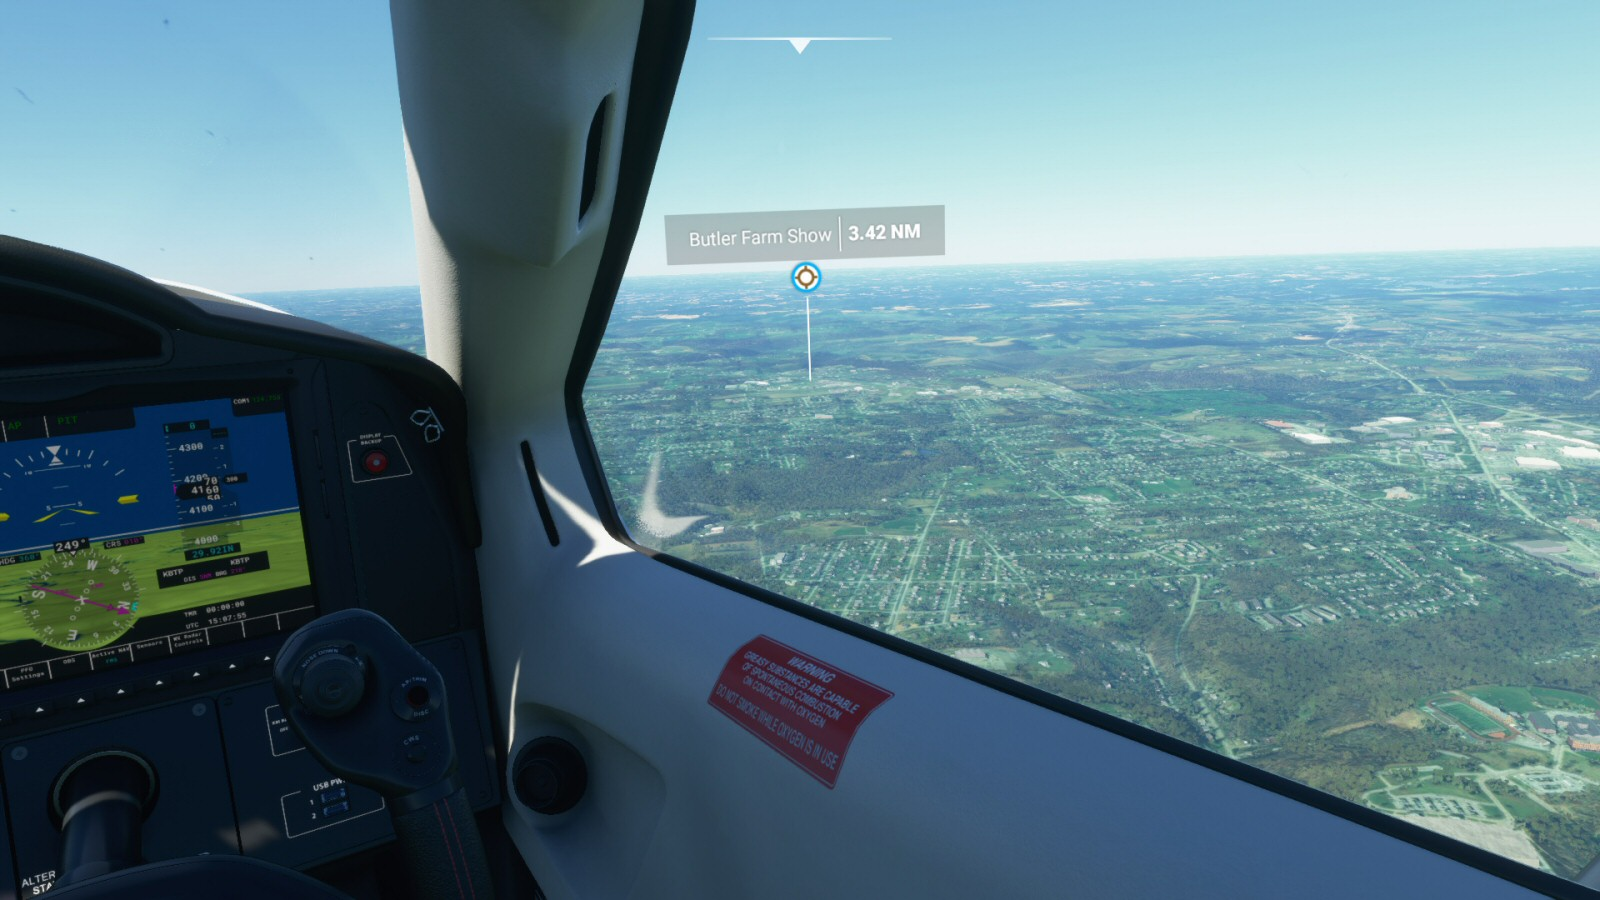 I like how it looks as if I'm playing the 1982 version of Flight Simulator on my dashboard.